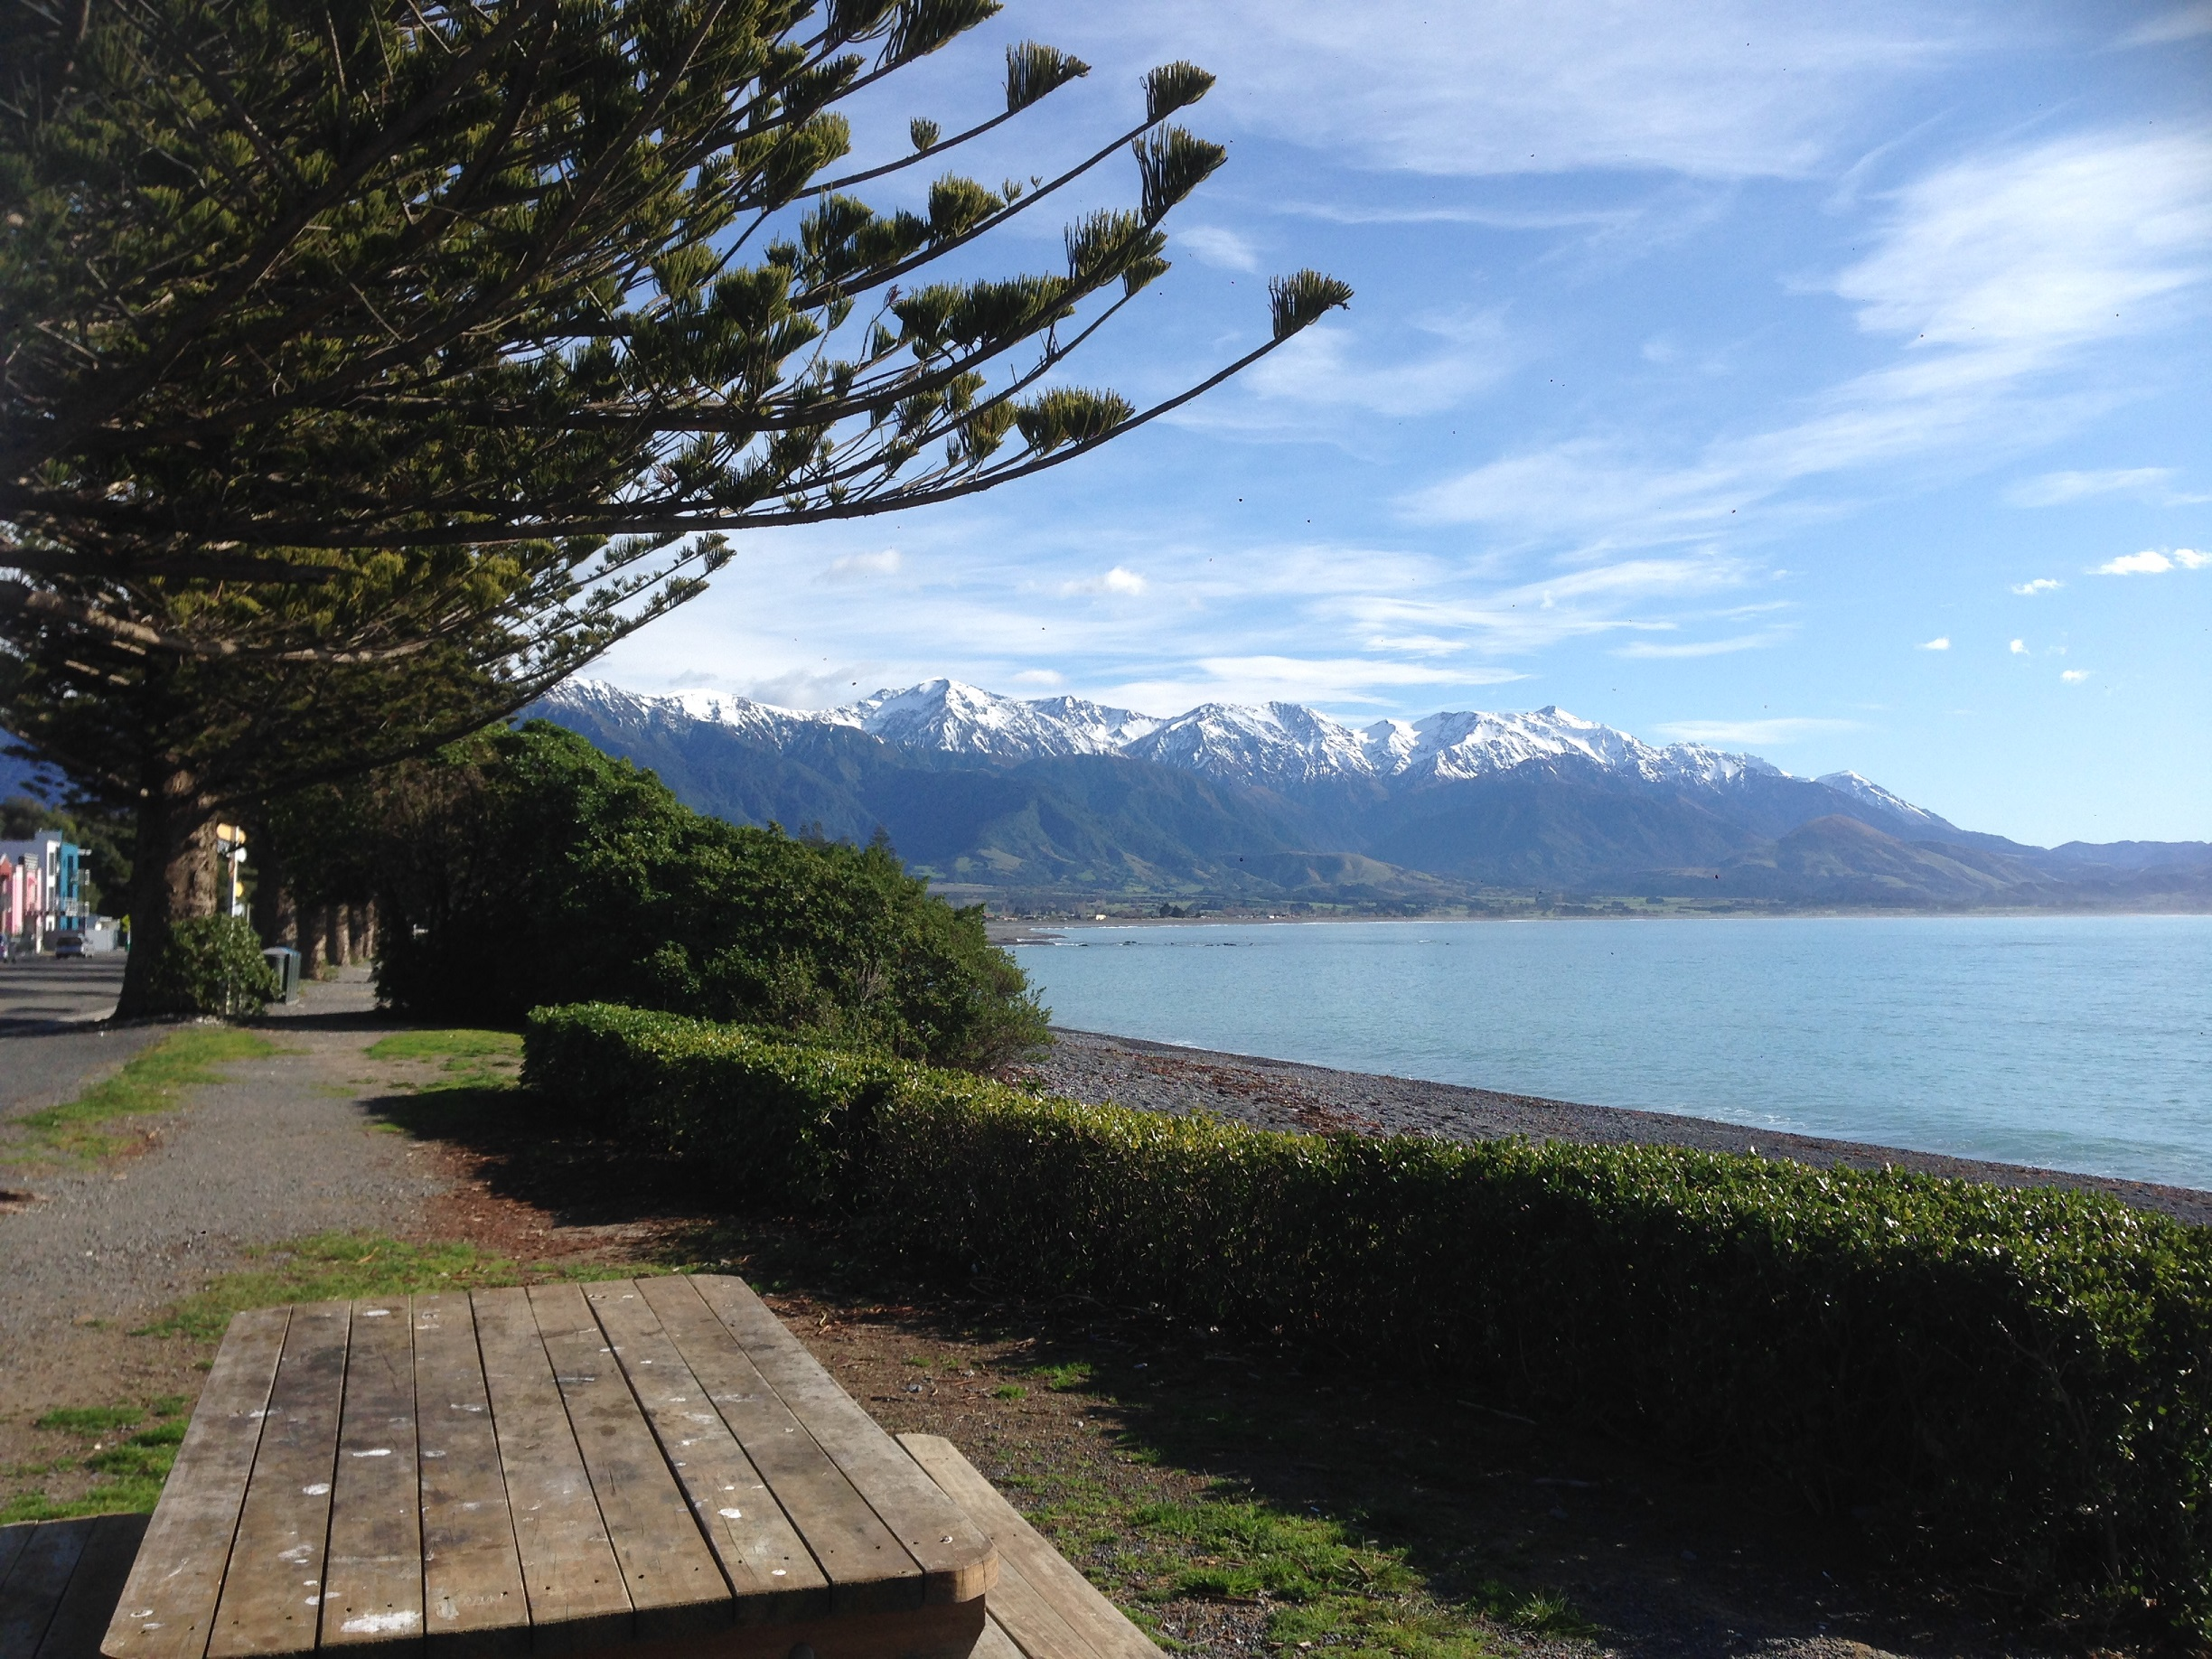 Kaikoura Peninsula, NZ. Photo by Ann-Marie Cahill